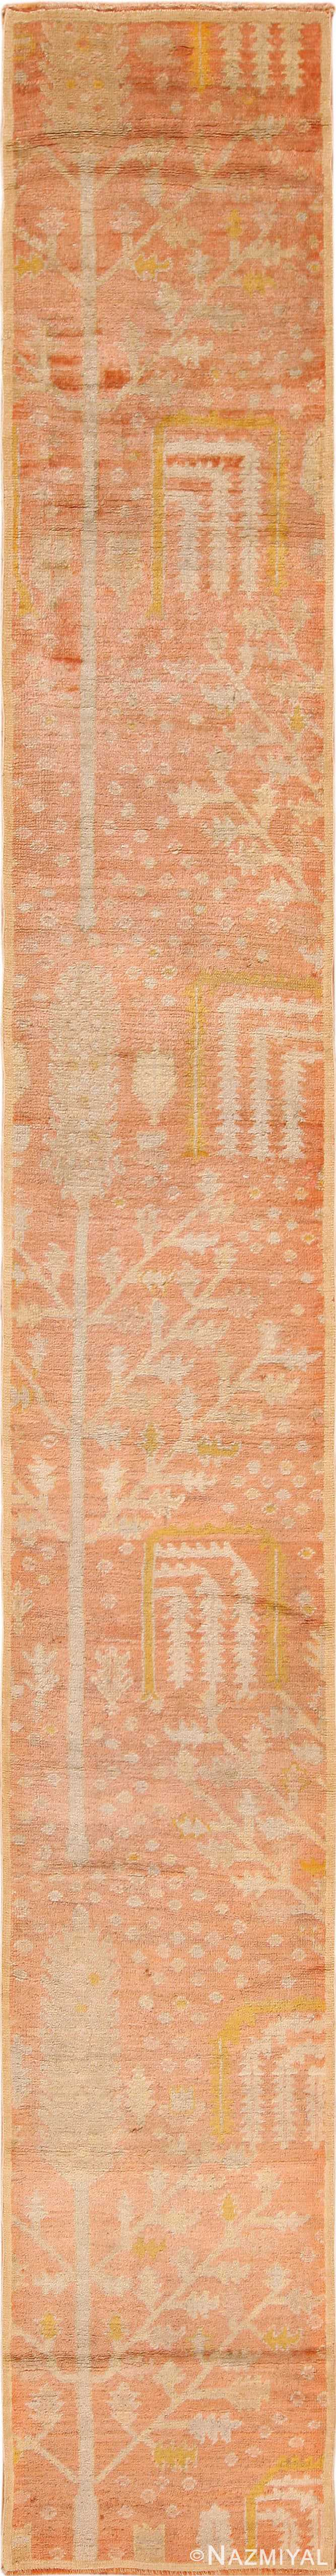 Full view antique Turkish Oushak runner rug 70223 by Nazmiyal